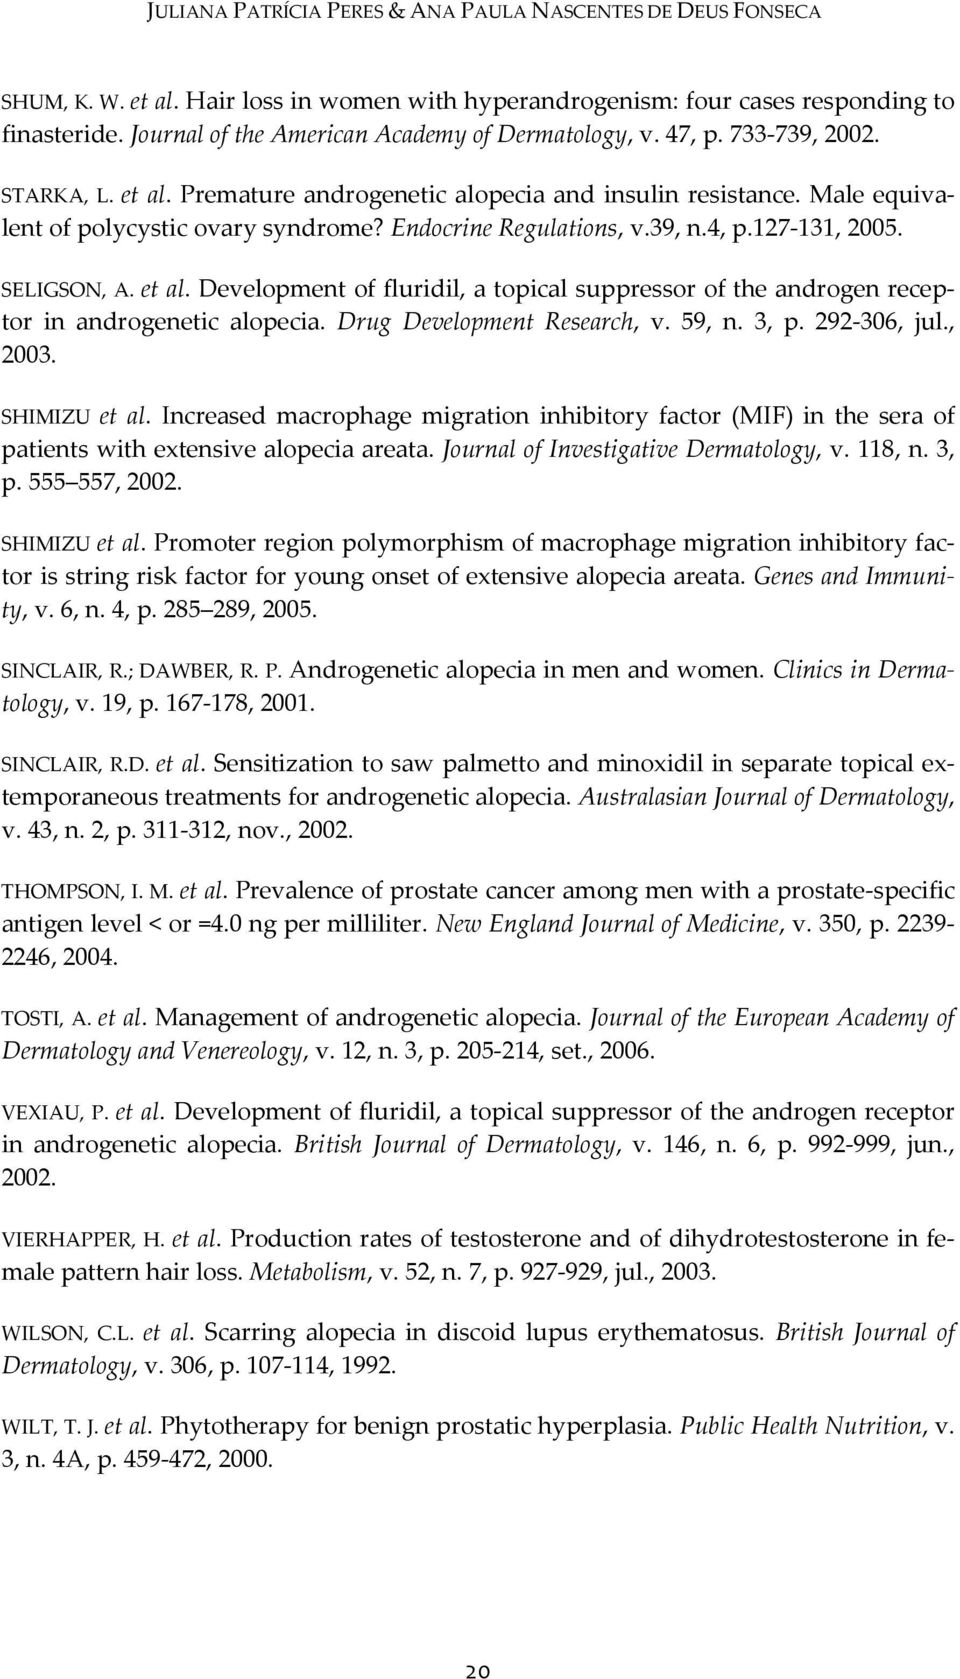 Endocrine Regulations, v.39, n.4, p.127-131, 2005. SELIGSON, A. et al. Development of fluridil, a topical suppressor of the androgen receptor in androgenetic alopecia. Drug Development Research, v.